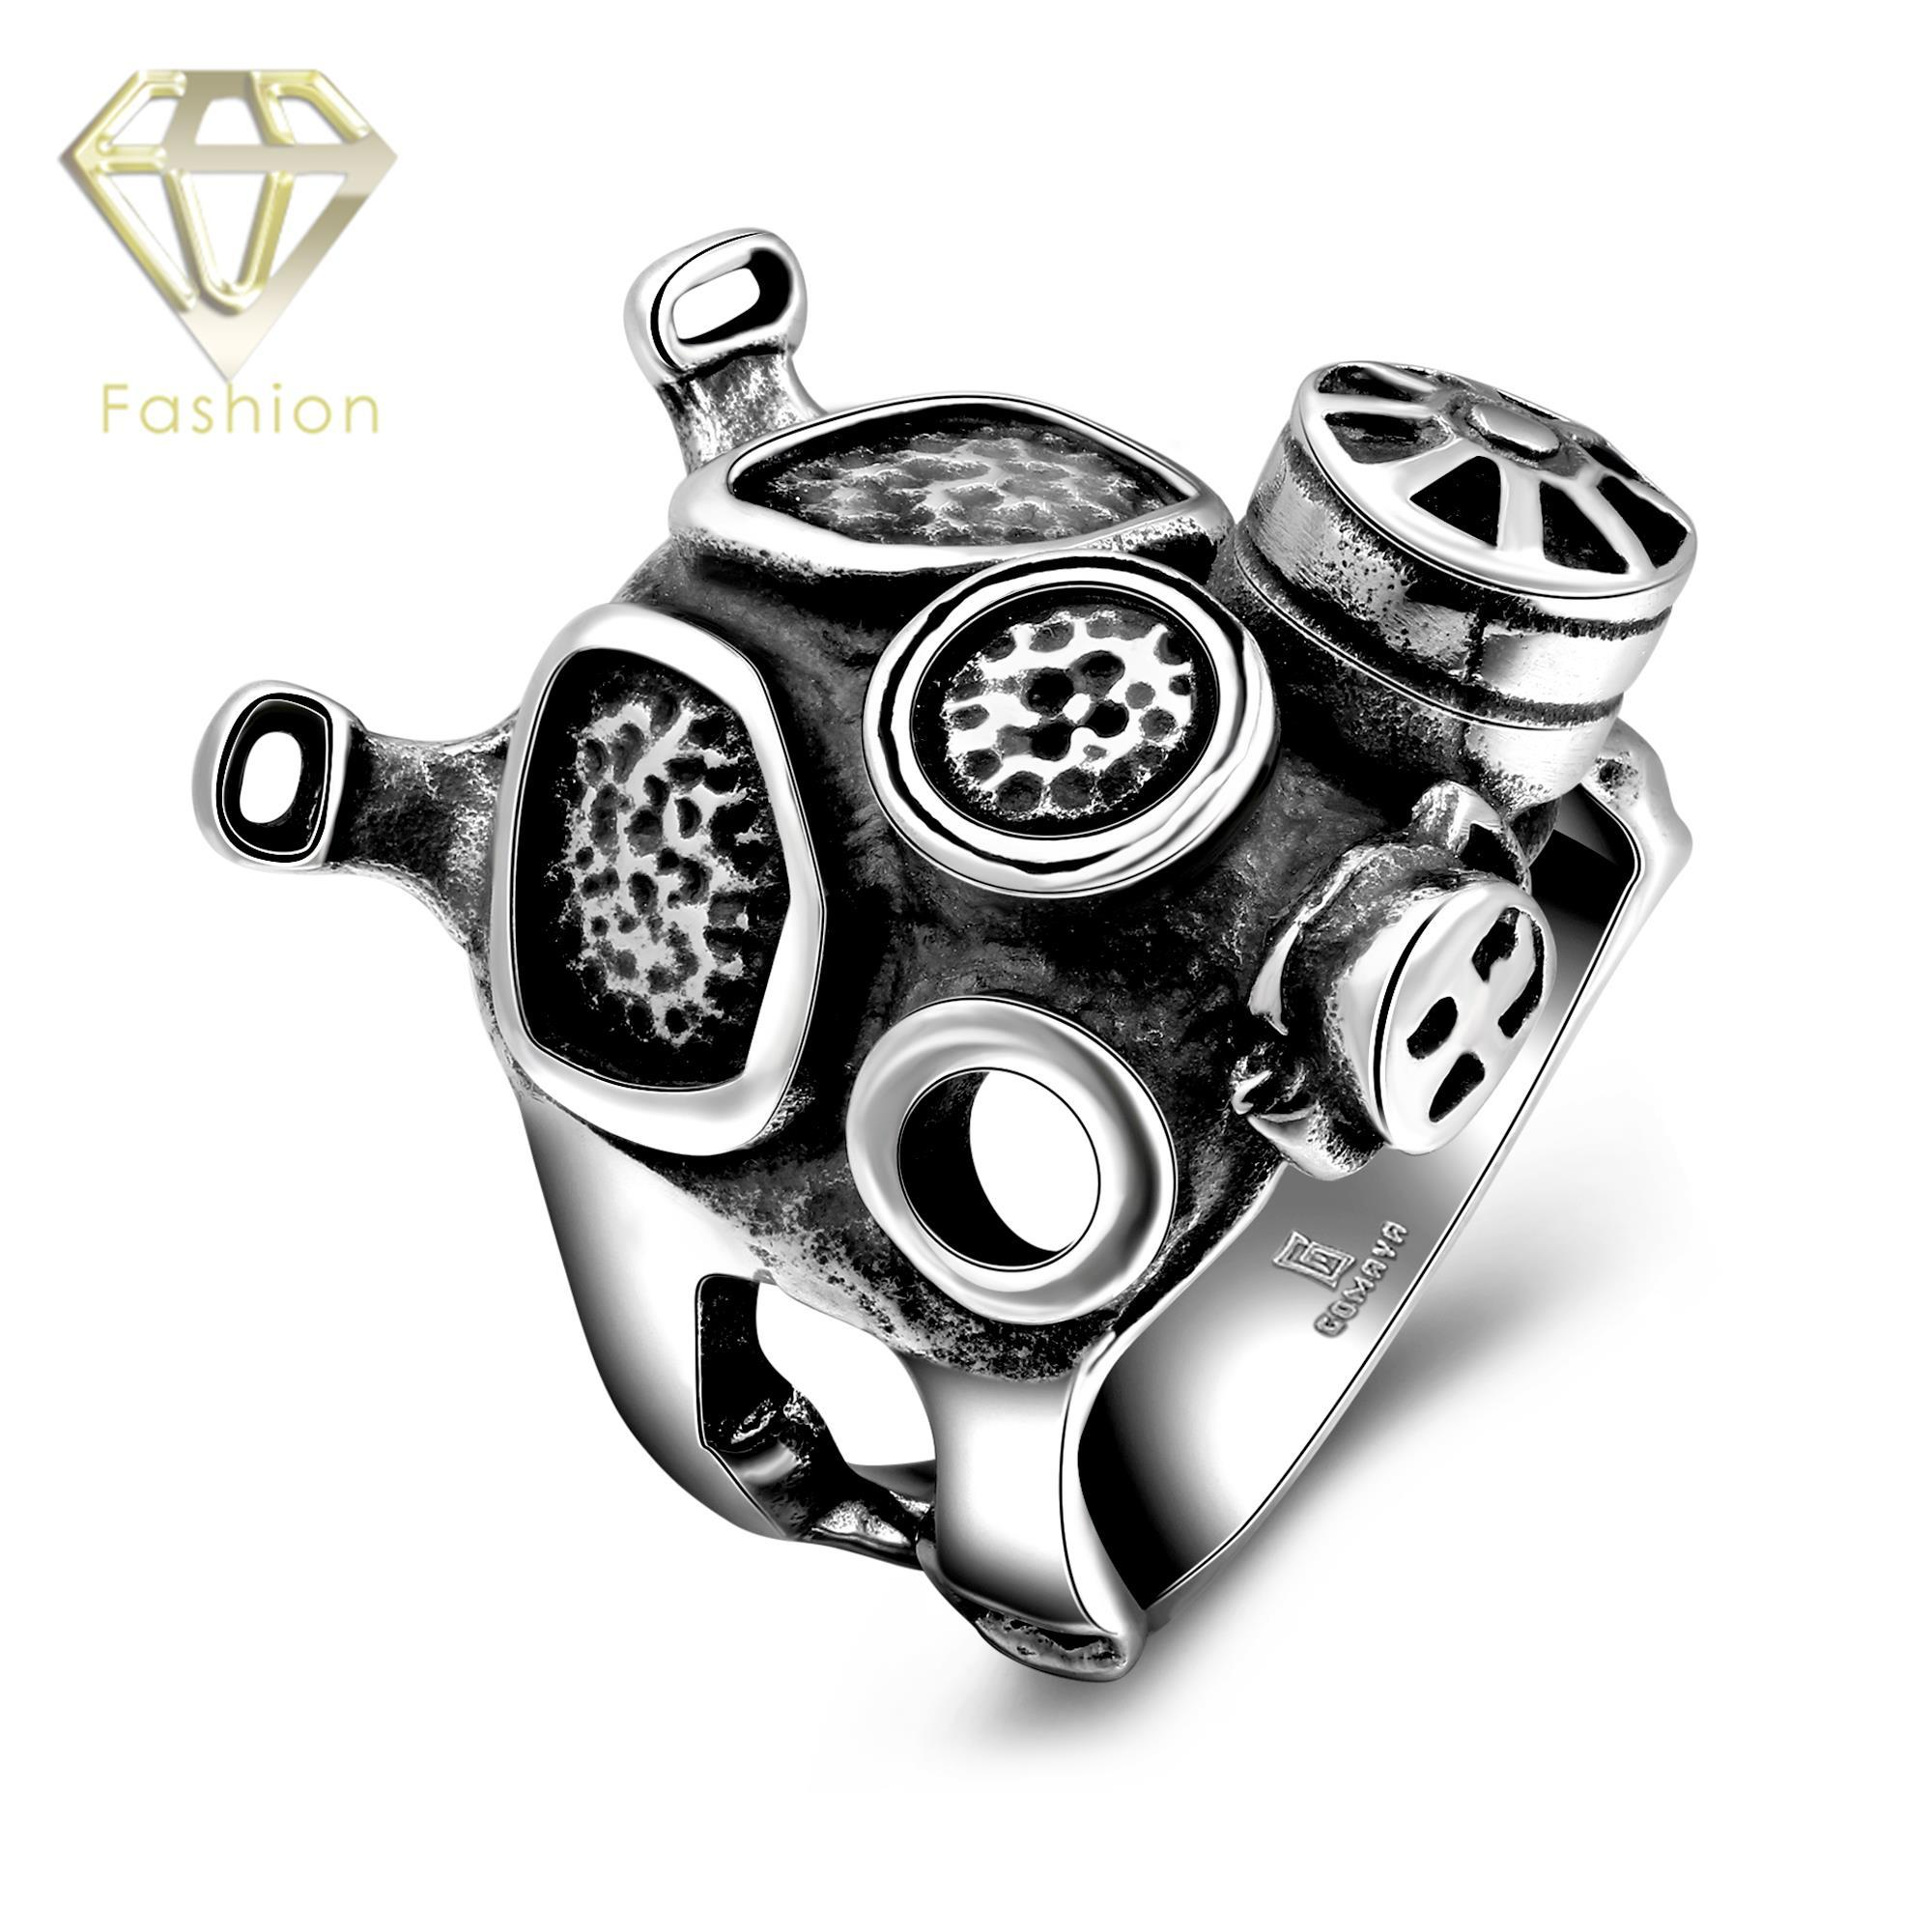 products engagement cz ring planet rings for blue big gold dragon crystal rock punk birthday filled cool head black magic fashion men vintage jewelry